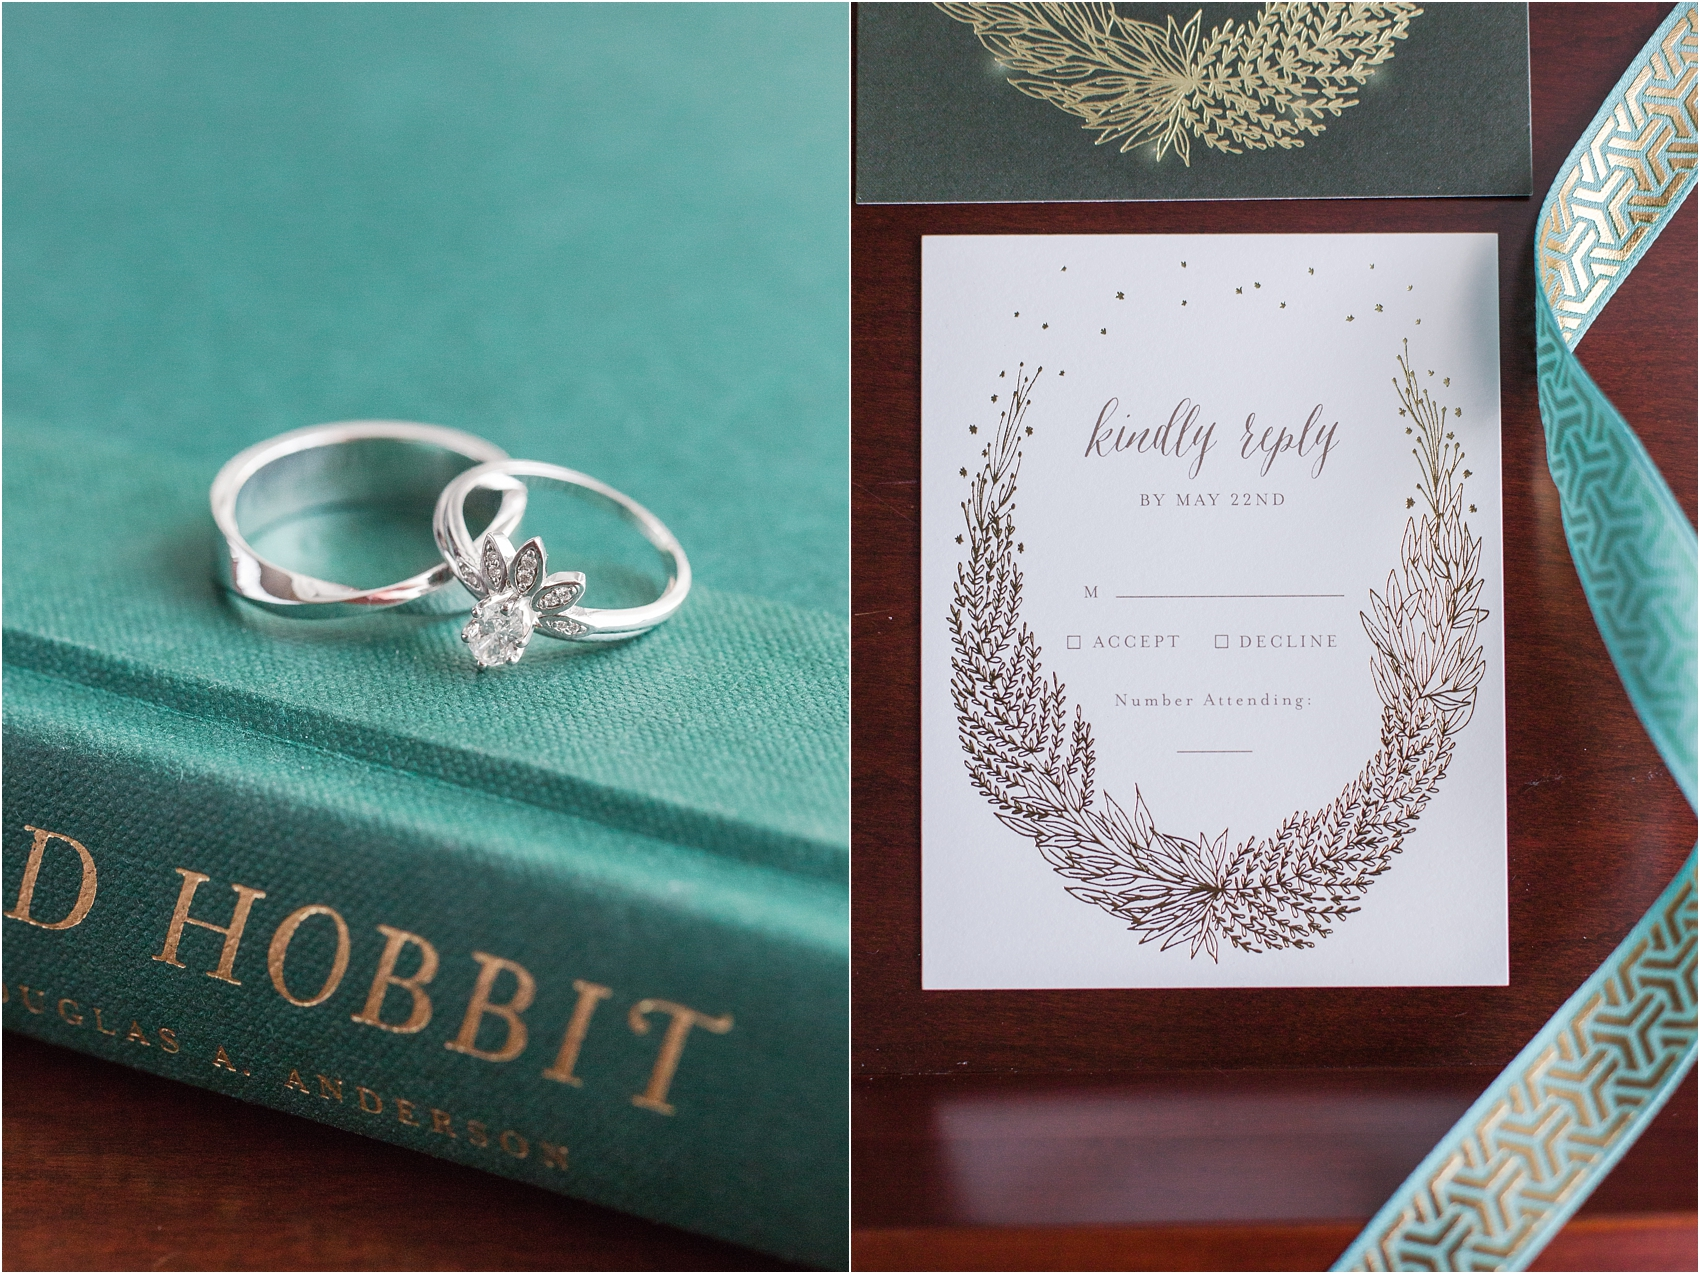 lord-of-the-rings-inspired-wedding-photos-at-crystal-gardens-in-howell-mi-by-courtney-carolyn-photography_0014.jpg